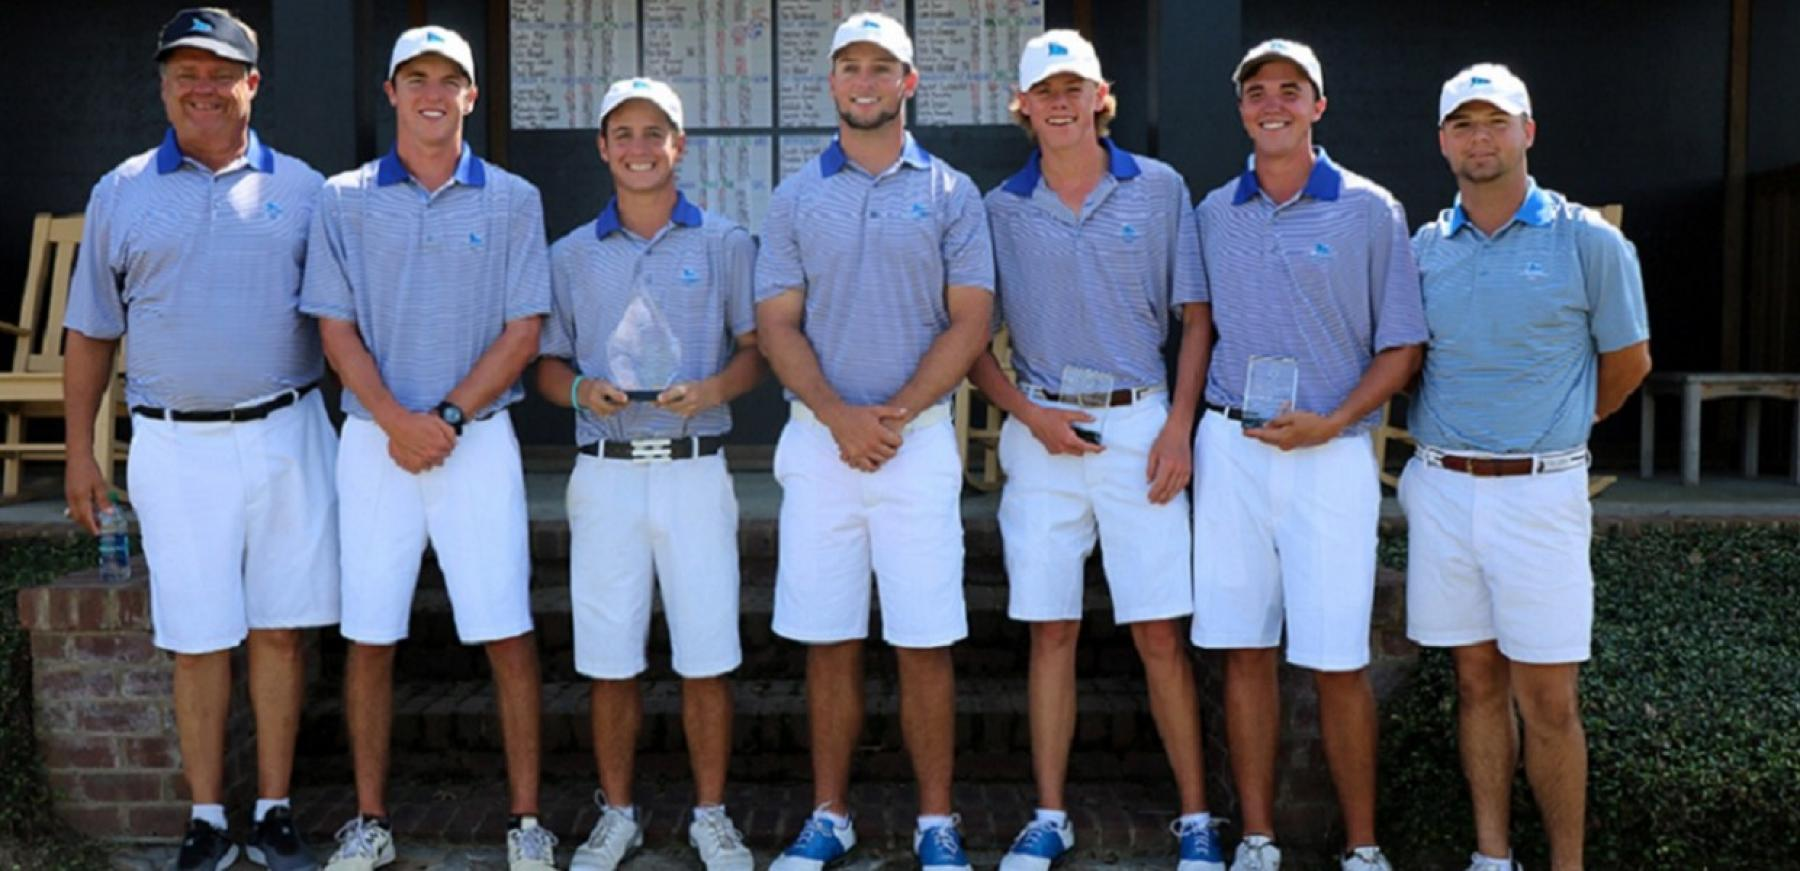 Mariners earn share of title at Thomas tournament